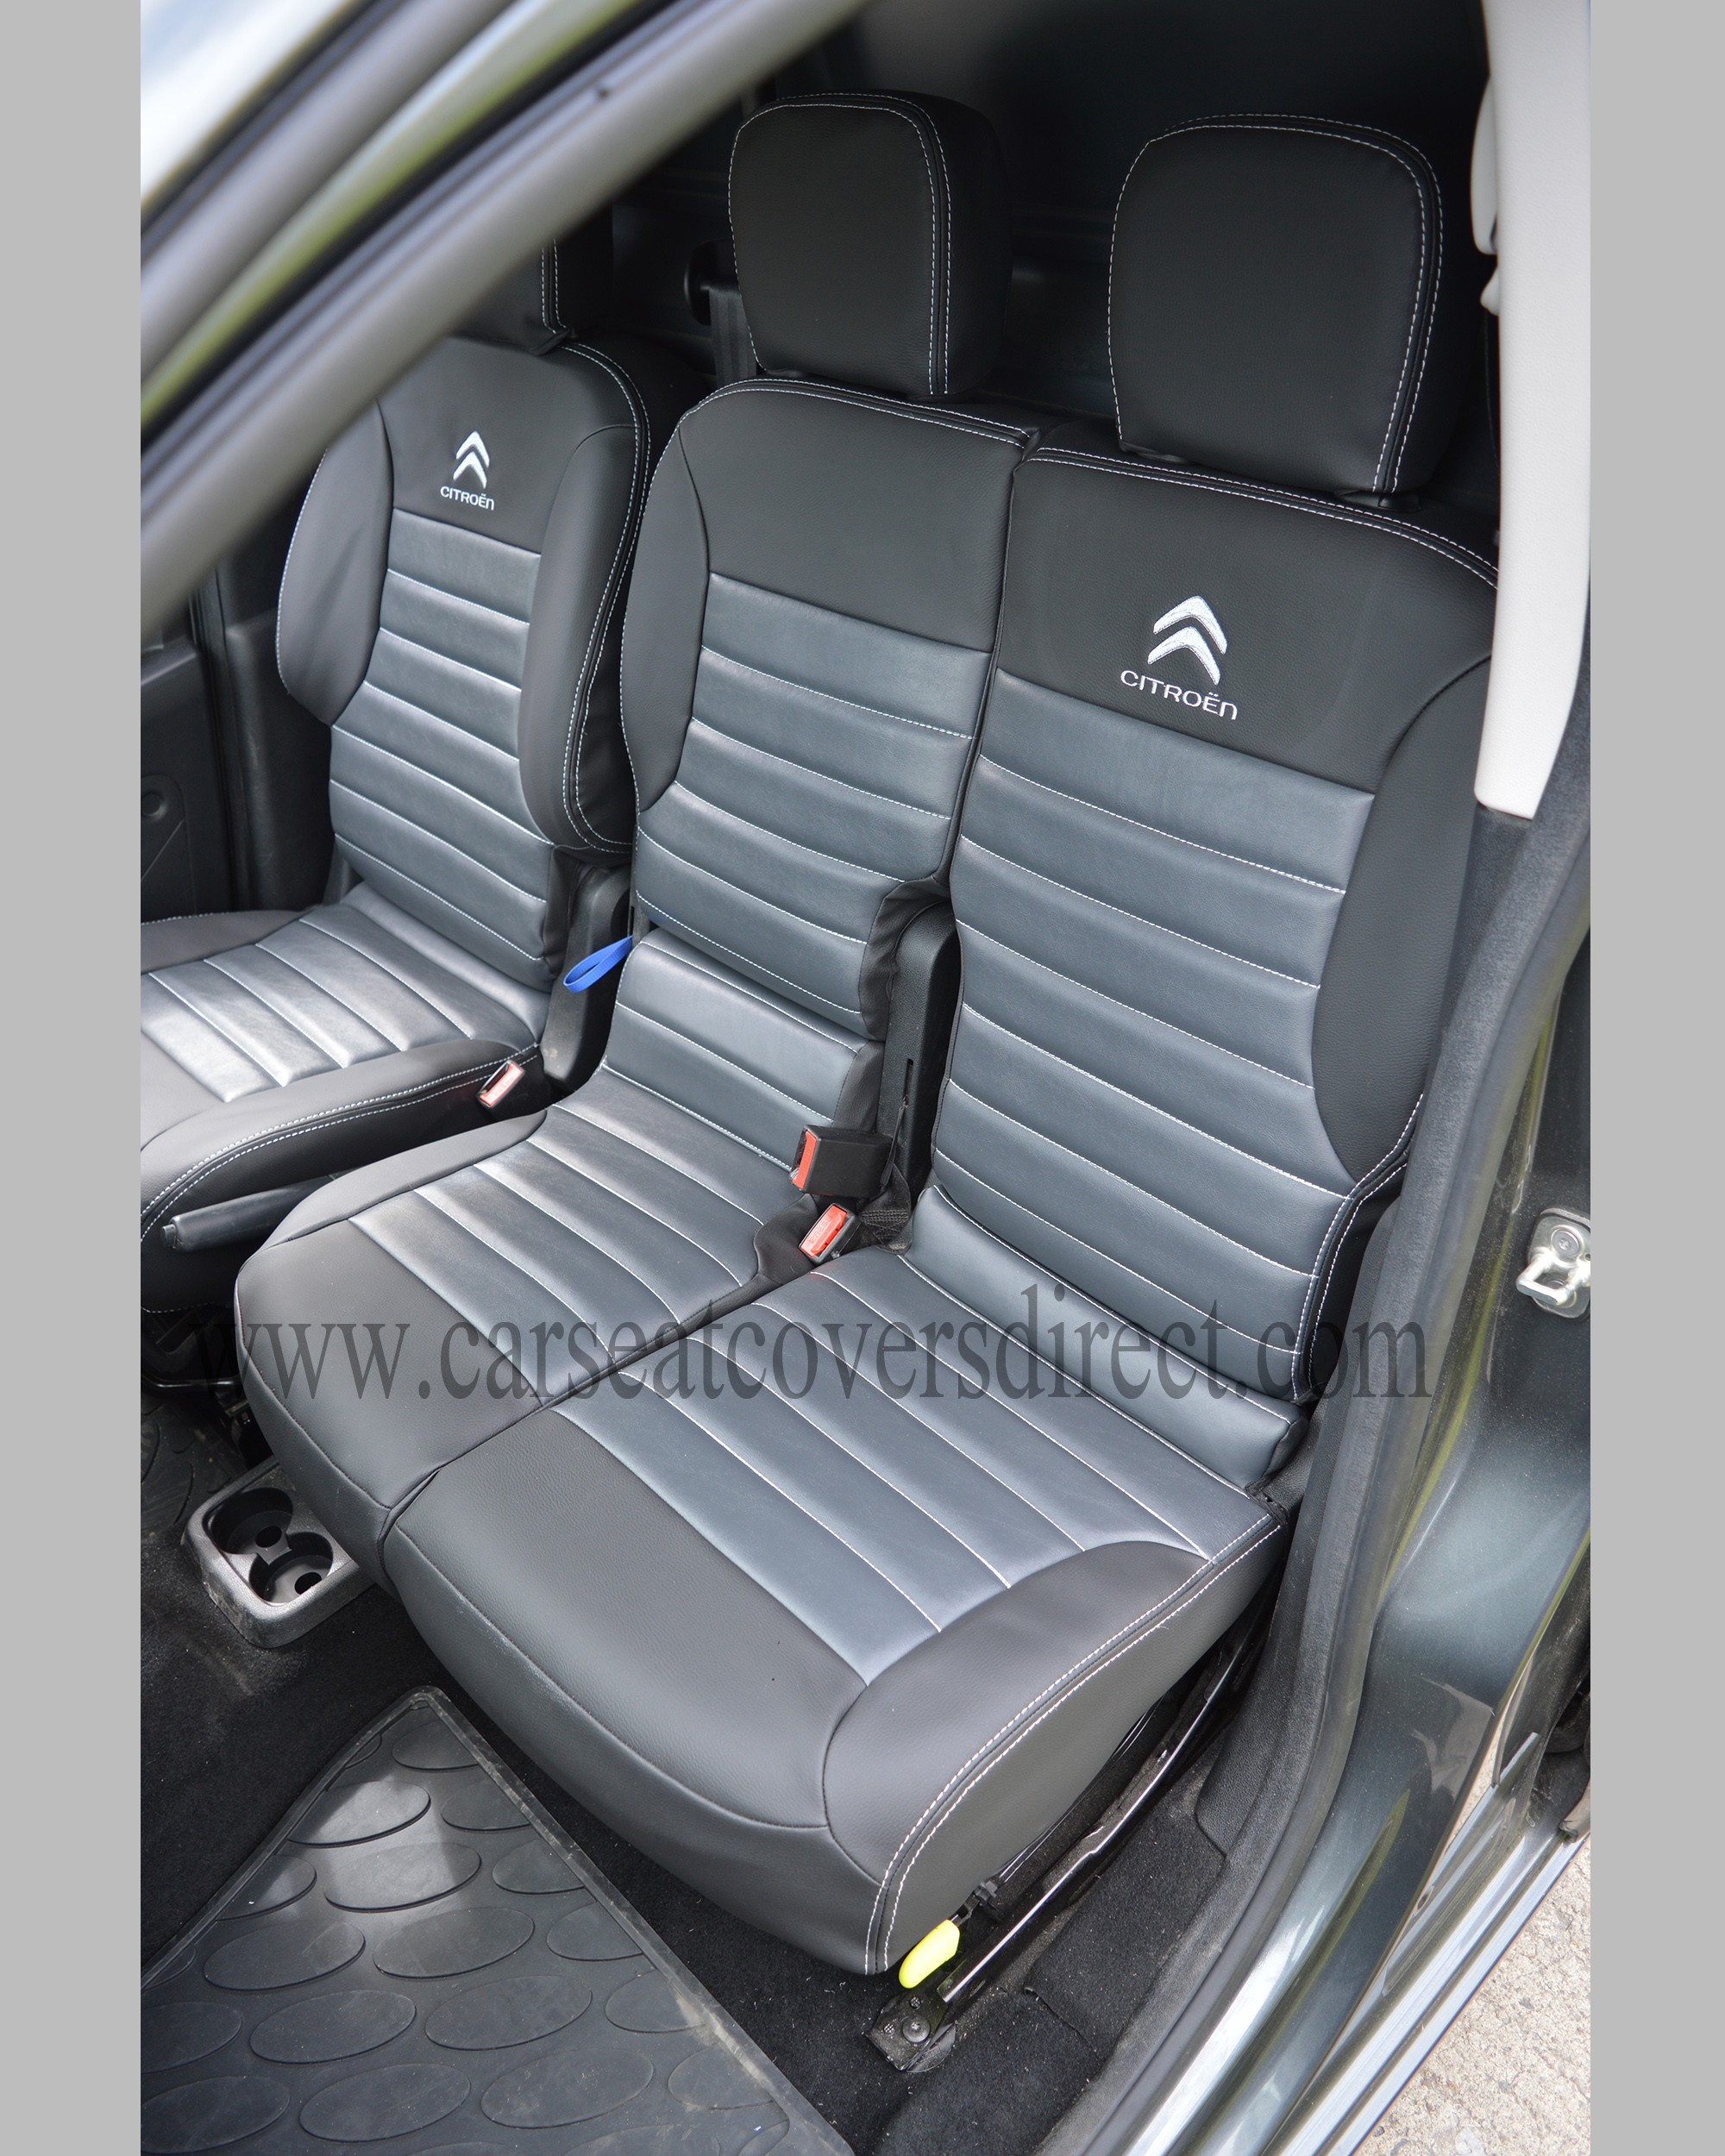 Citroen Berlingo Tailored Quilted Seat Covers Charcoal